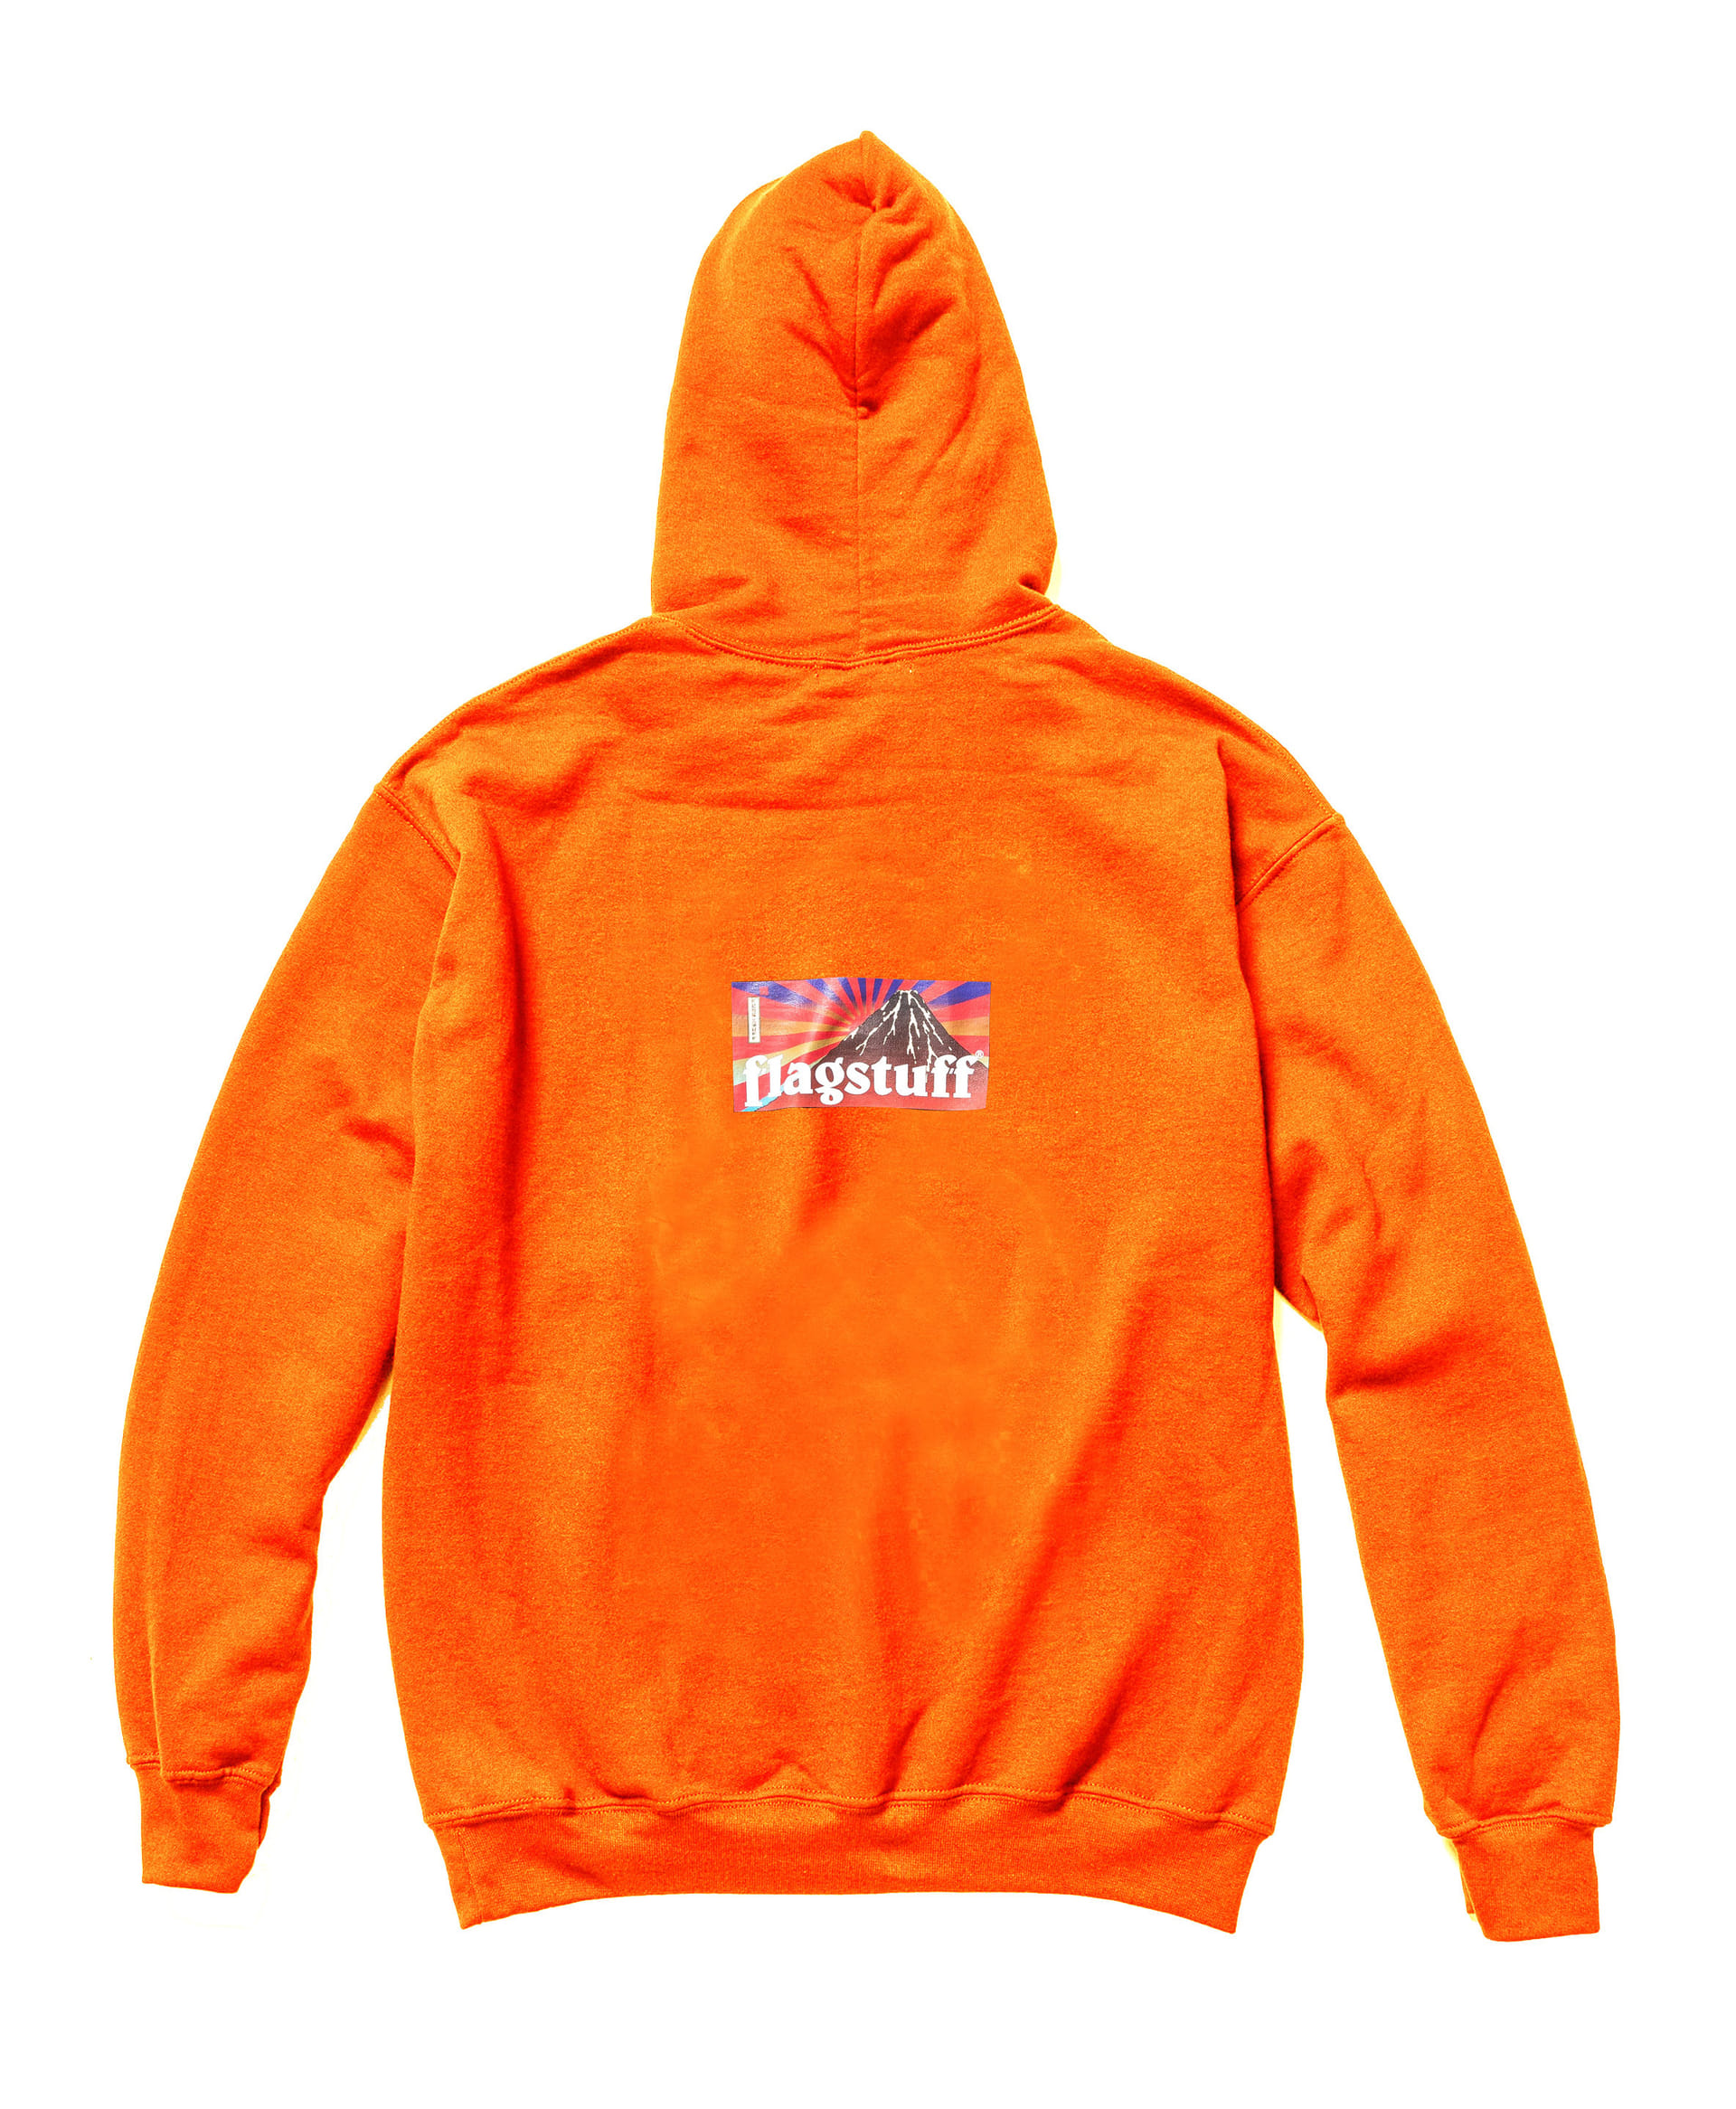 19SS-5th-FS-02_ORANGES-to-XL_2.jpg